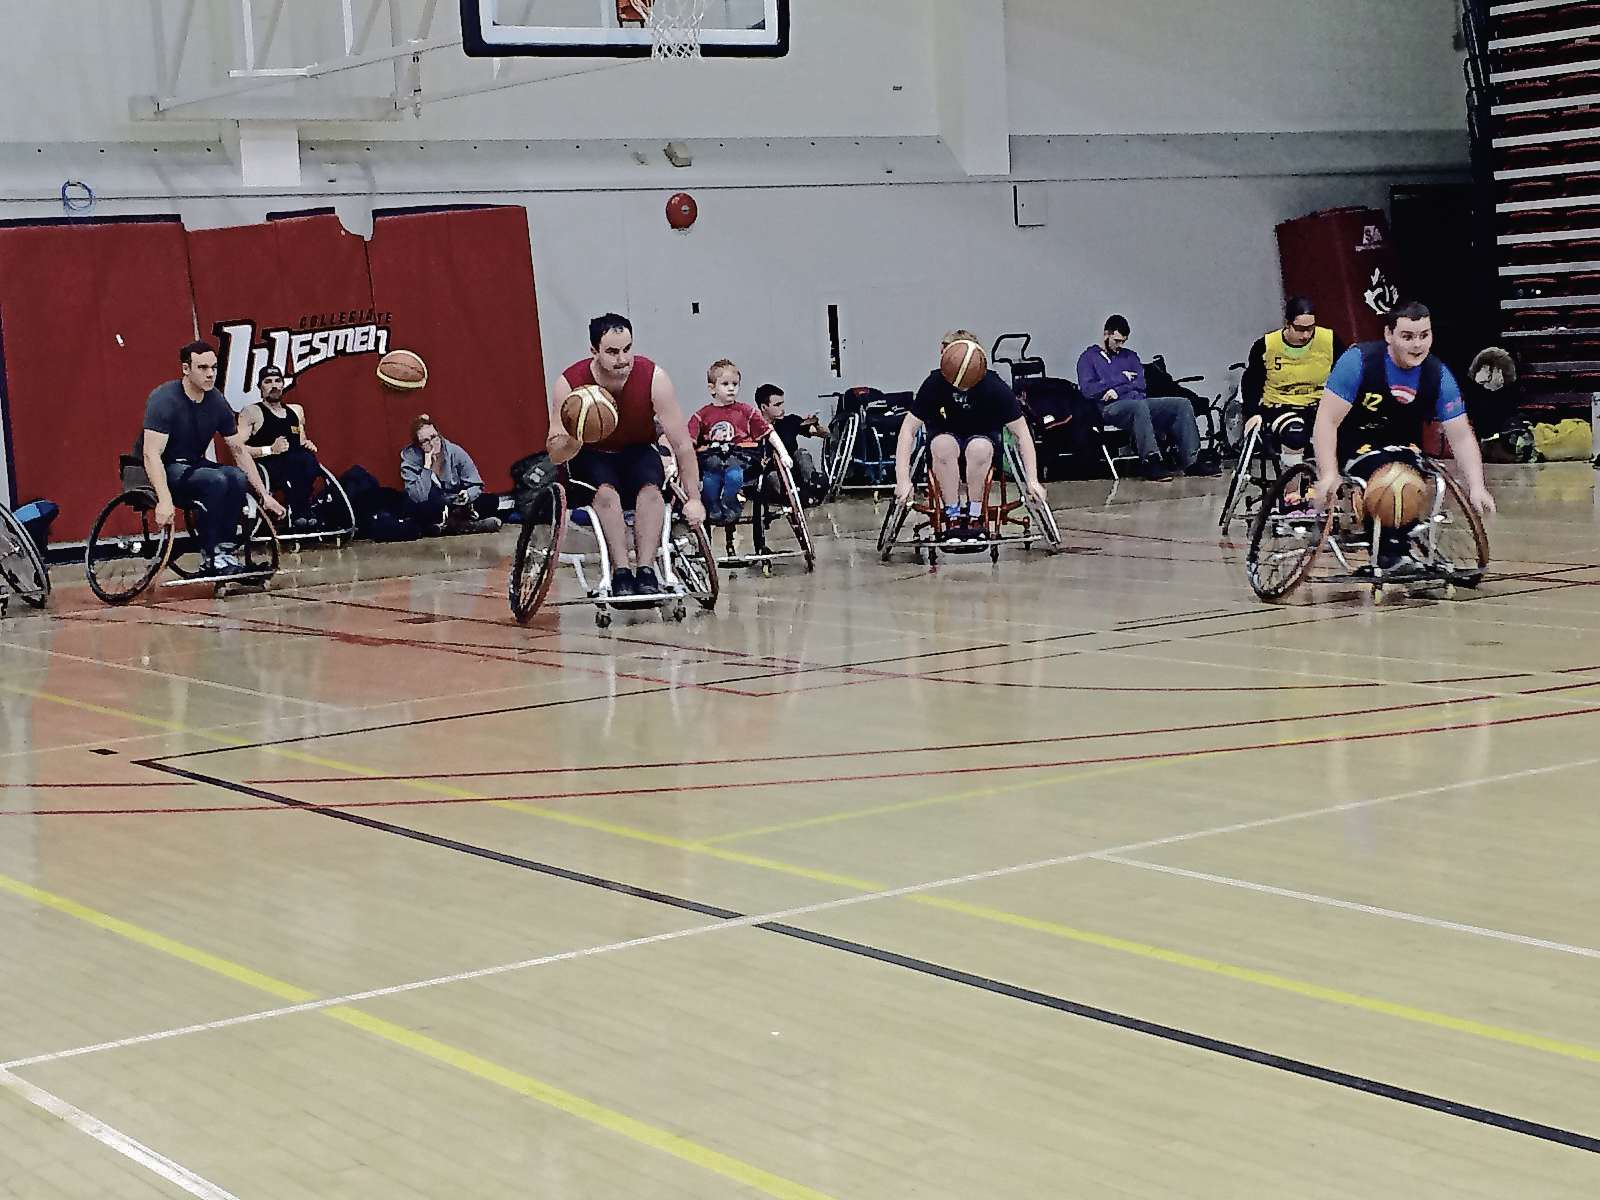 Members of Team Manitoba Wheelchair Basketball practise in preparation for the upcoming Canadian Wheelchair Basketball Championships in Kamloops, B.C.